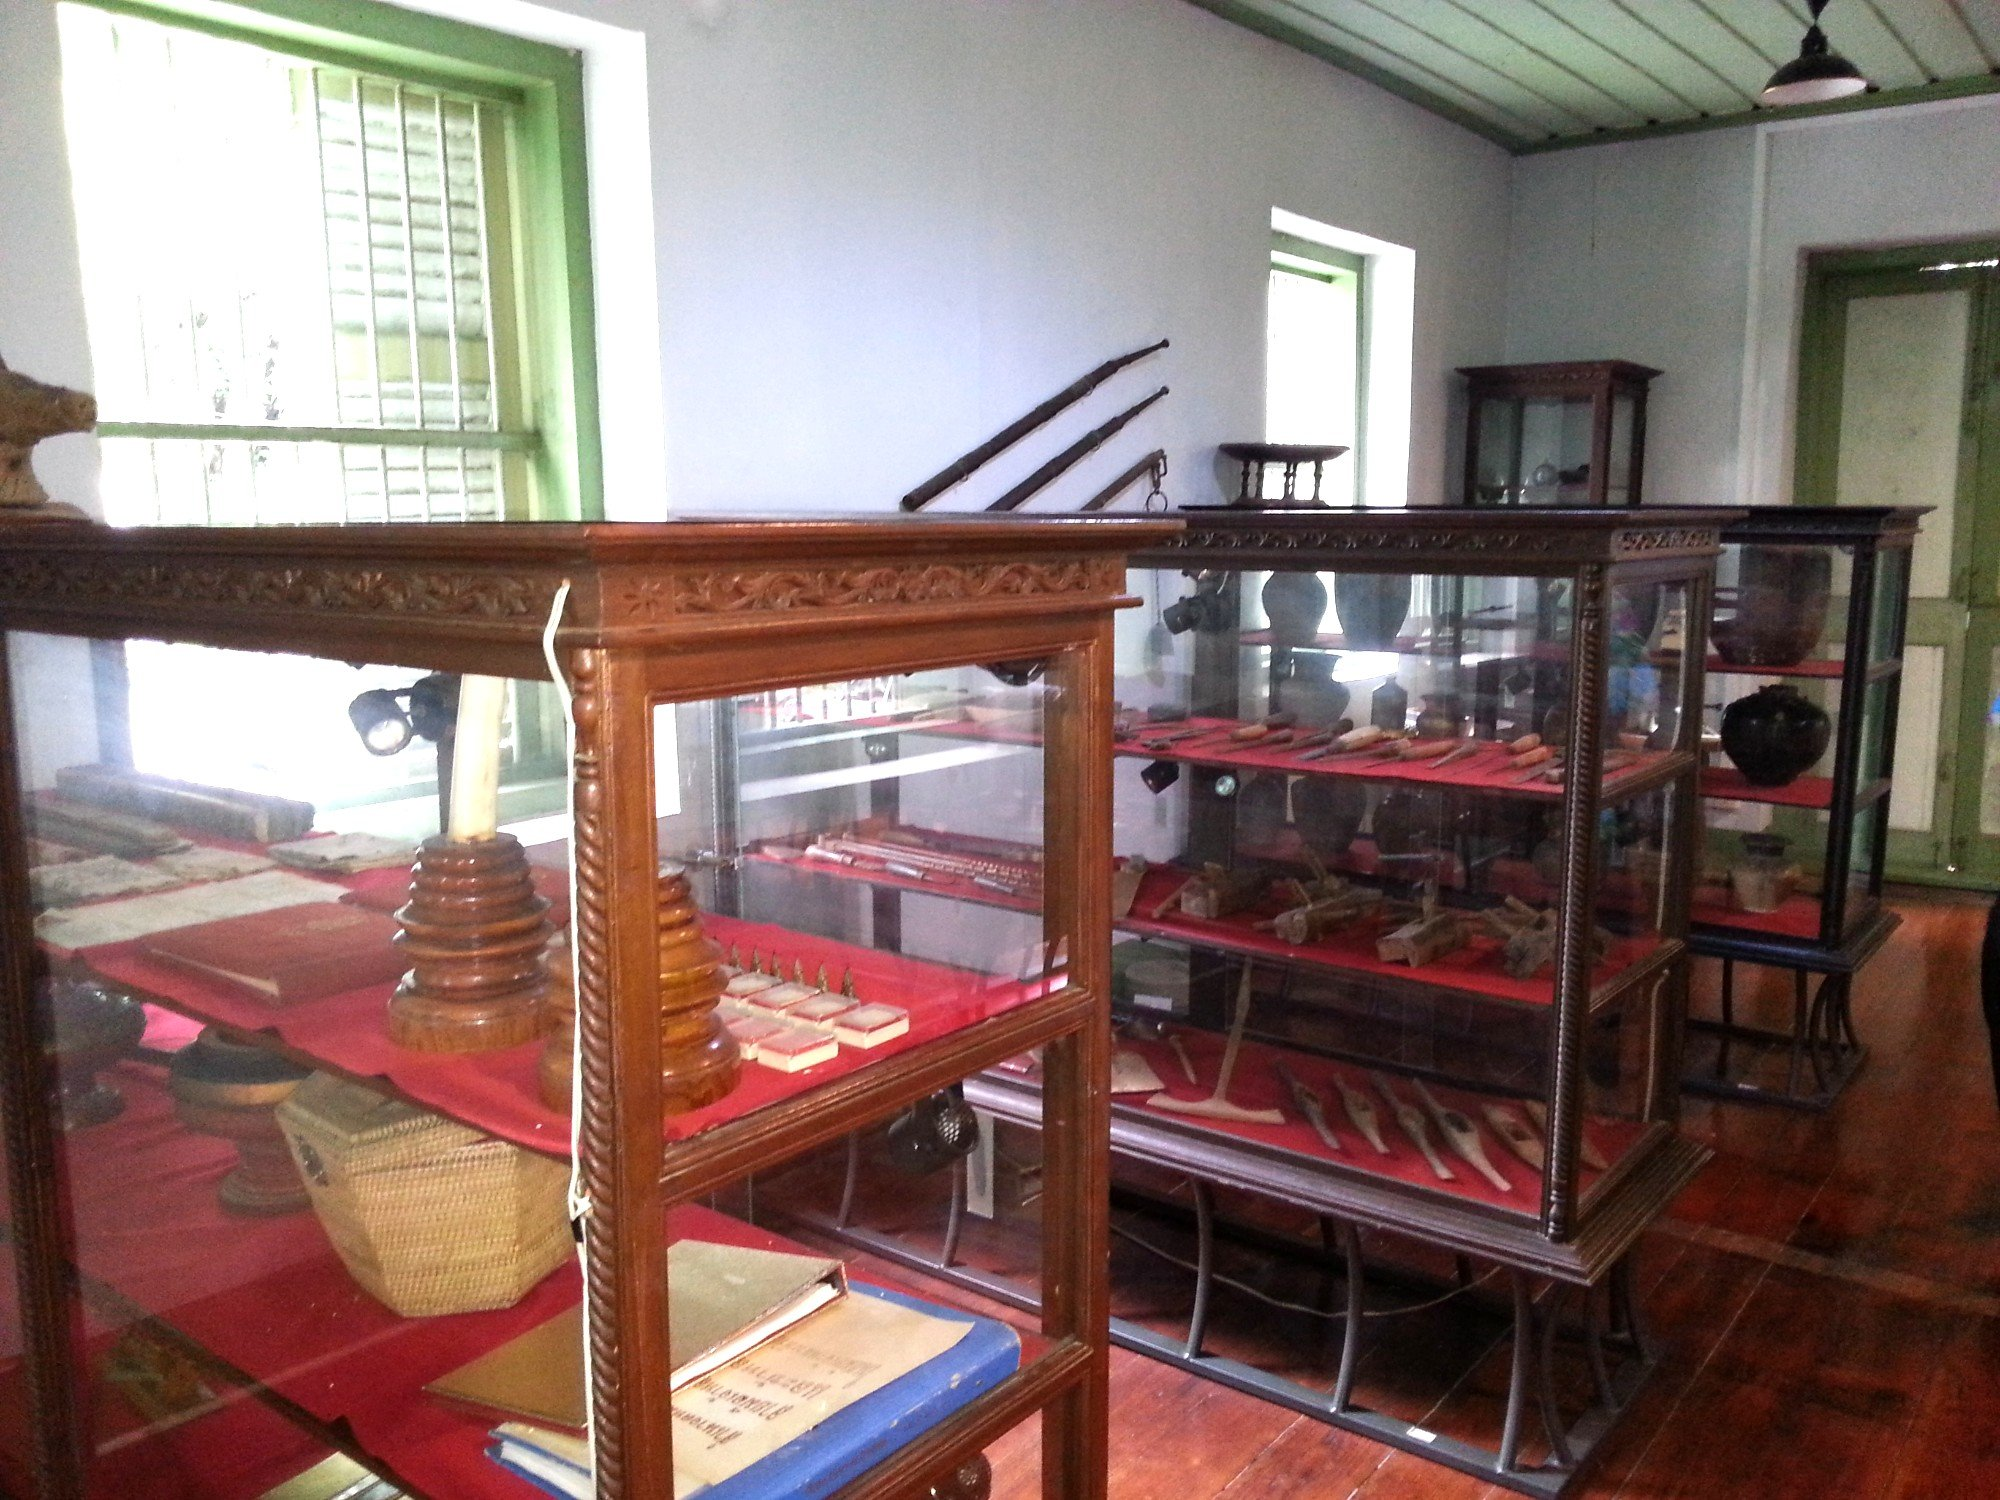 Display cabinets at the Khum Chao Luang Museum